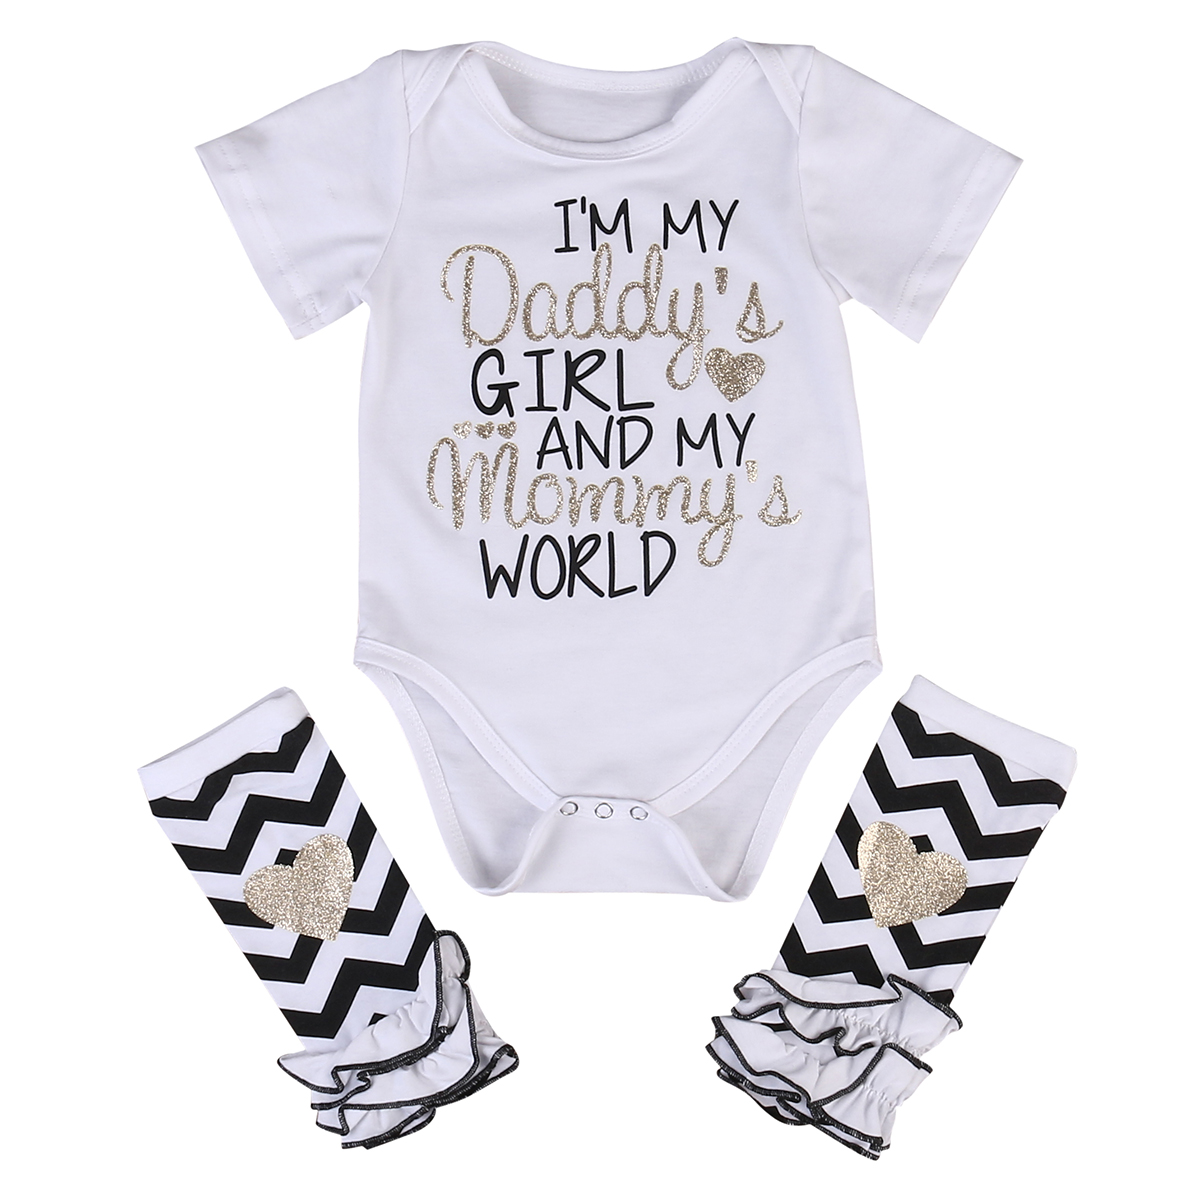 07643a653d68 Newborn Infant Baby Girls Outfits I m daddy girl Romper+ Striped Warm  Leggings Jumpsuit Clothes